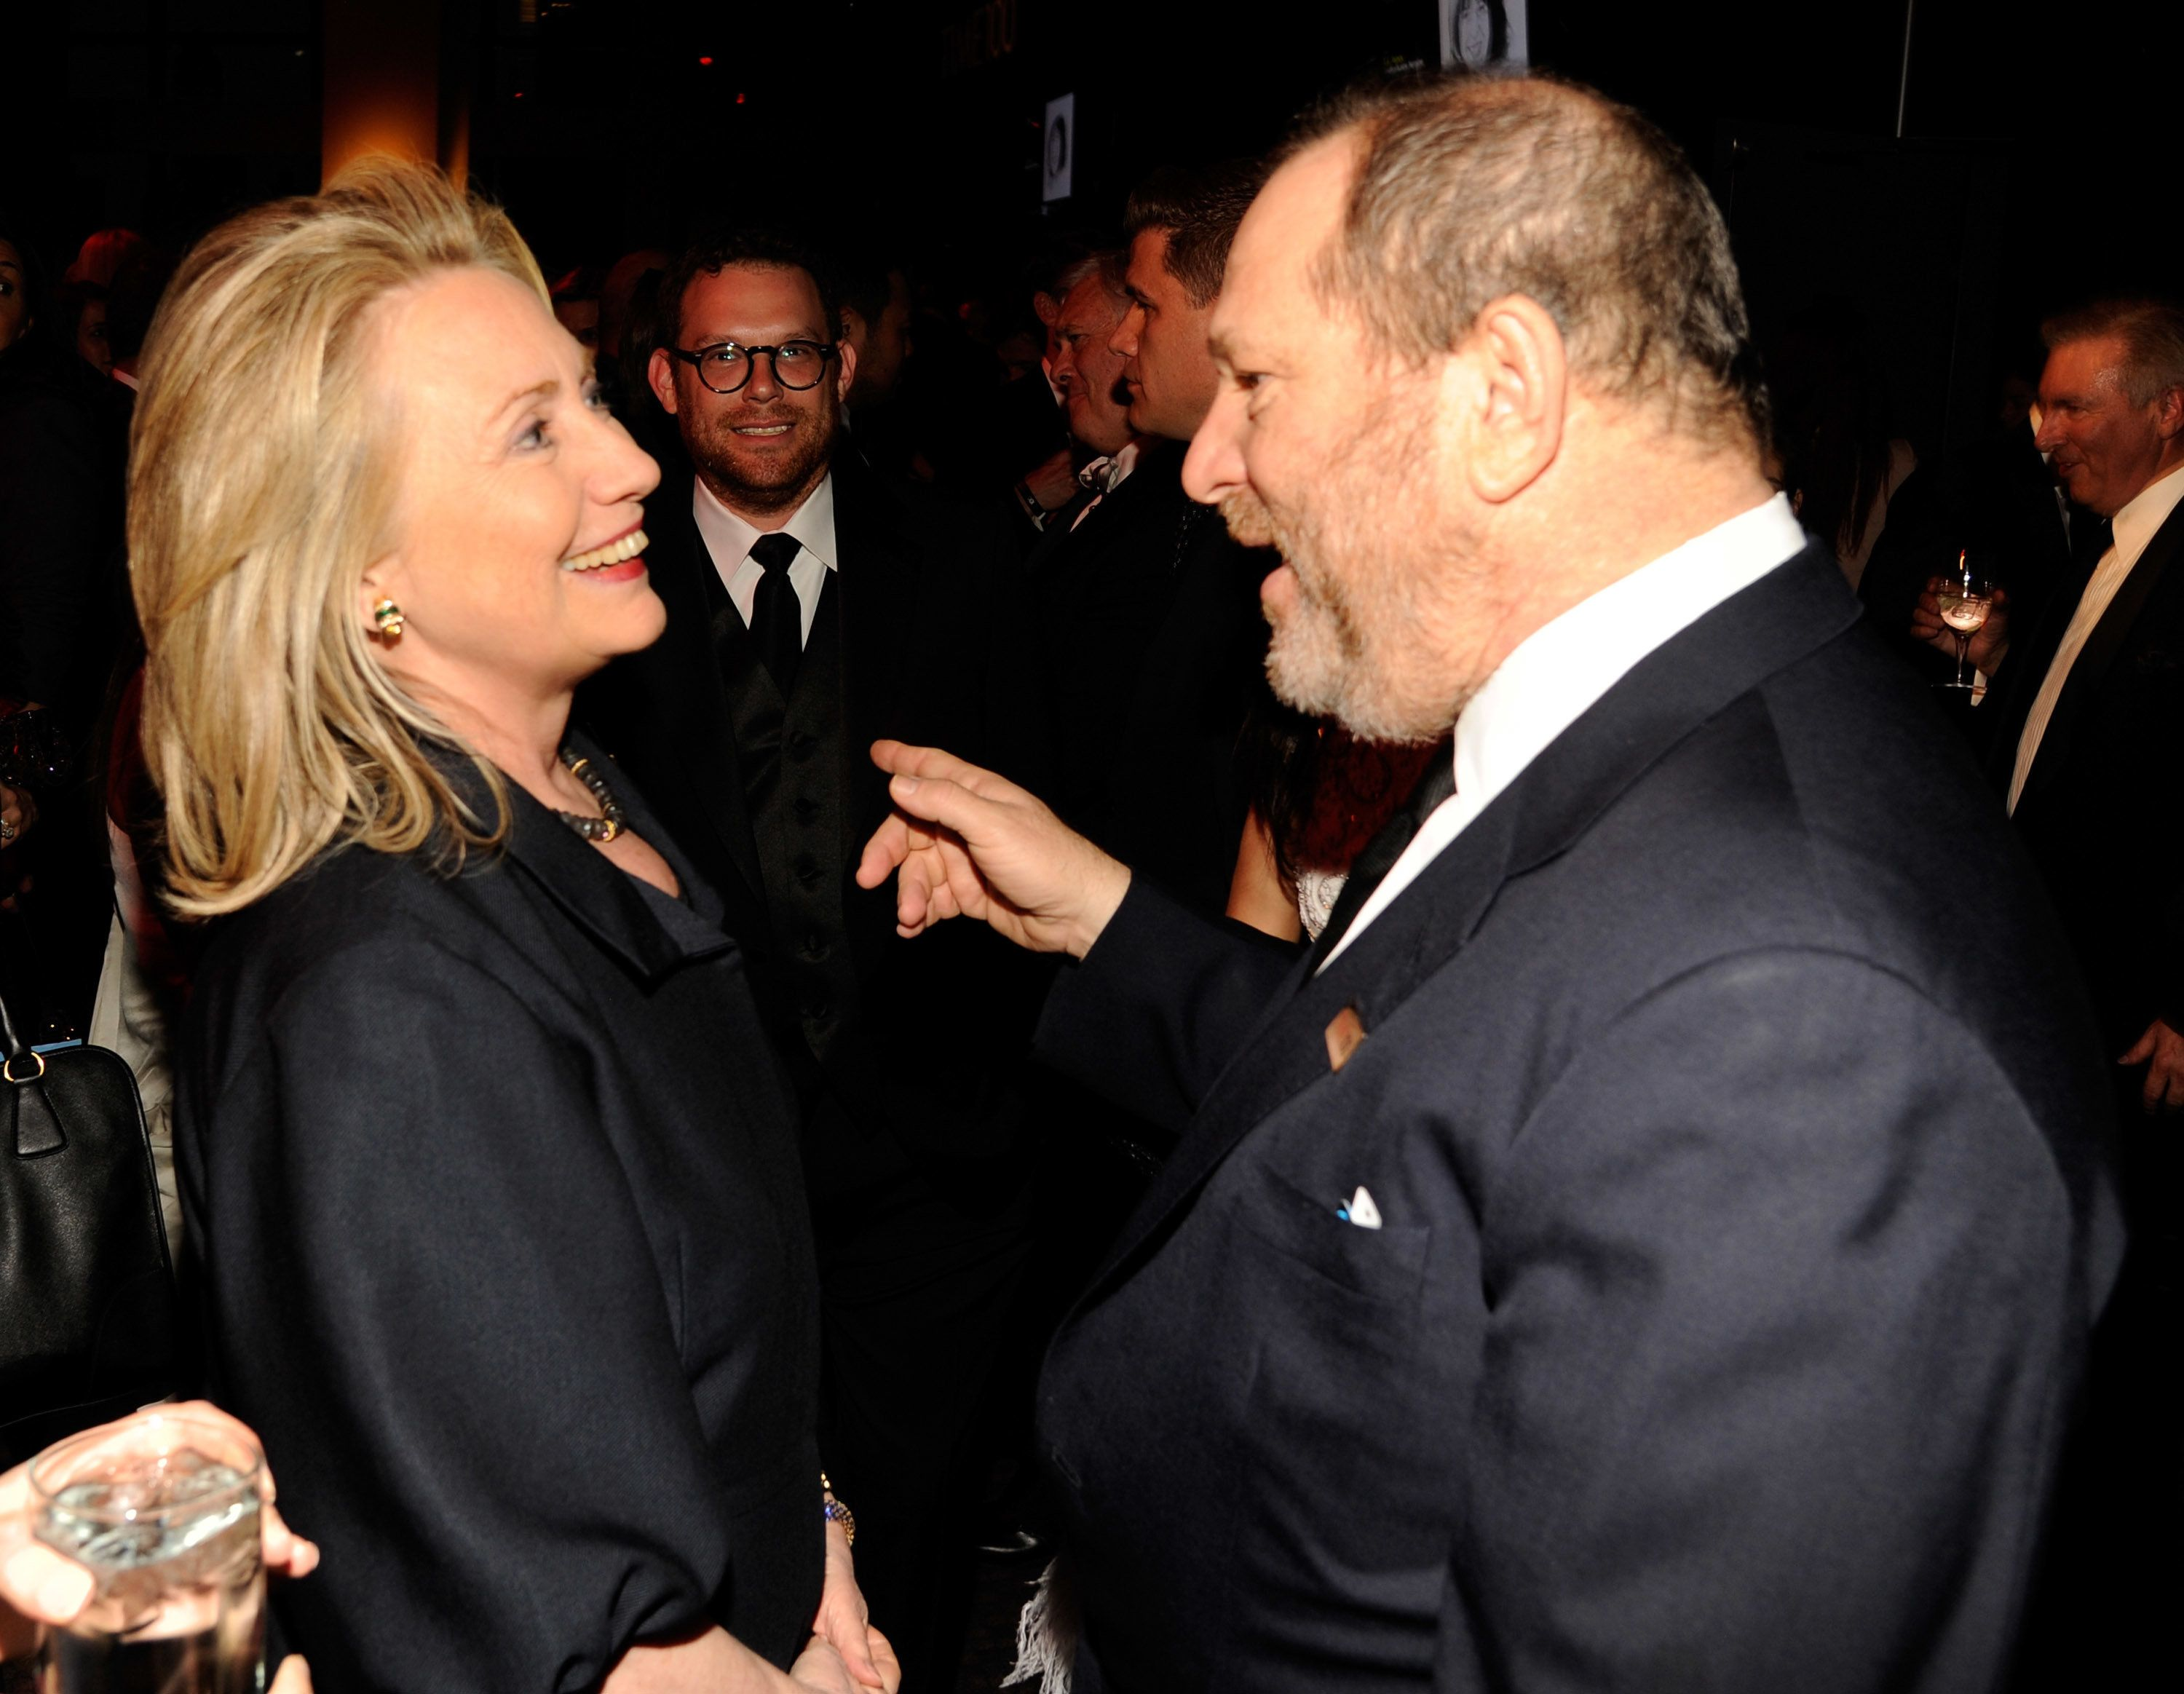 NEW YORK, NY - APRIL 24:  United States Secretary of State Hillary Clinton, Georgina Chapman and Harvey Weinstein attend the TIME 100 Gala celebrating TIME'S 100 Most Infuential People In The World at Jazz at Lincoln Center on April 24, 2012 in New York City.  (Photo by Kevin Mazur/WireImage for TIME)